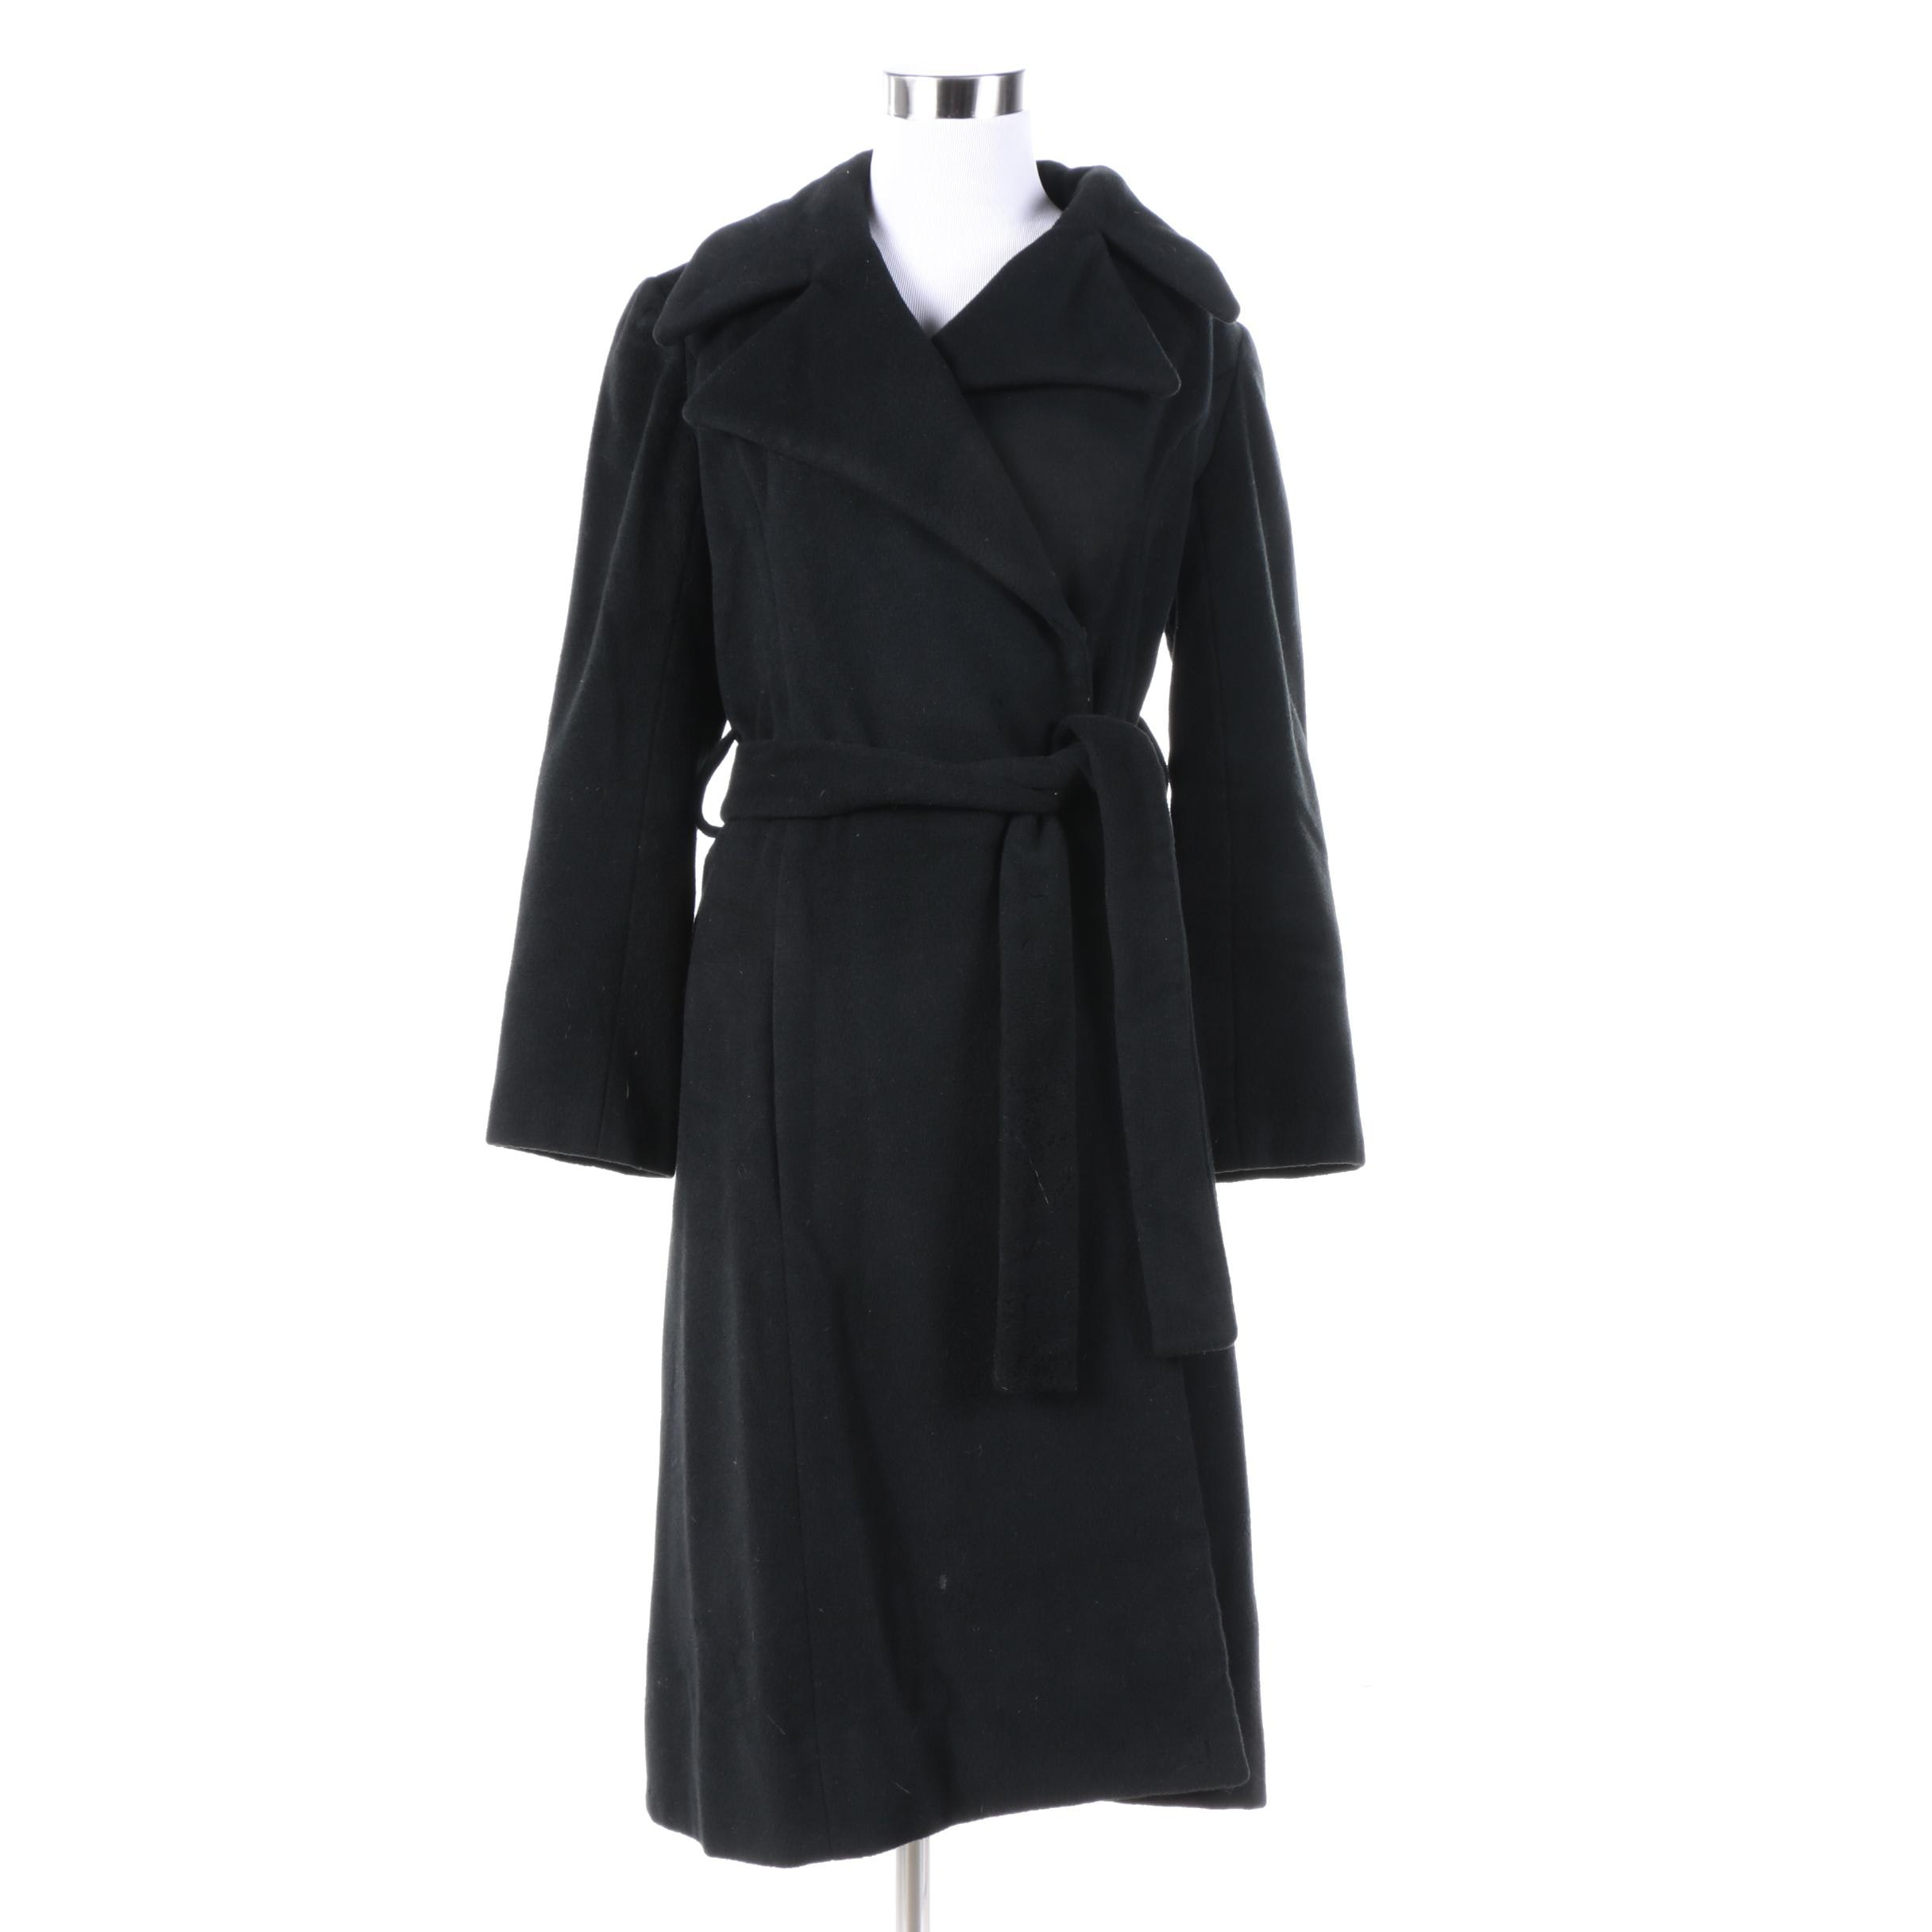 Women's Black Wool Coat with Notched Collar and Tie Belt